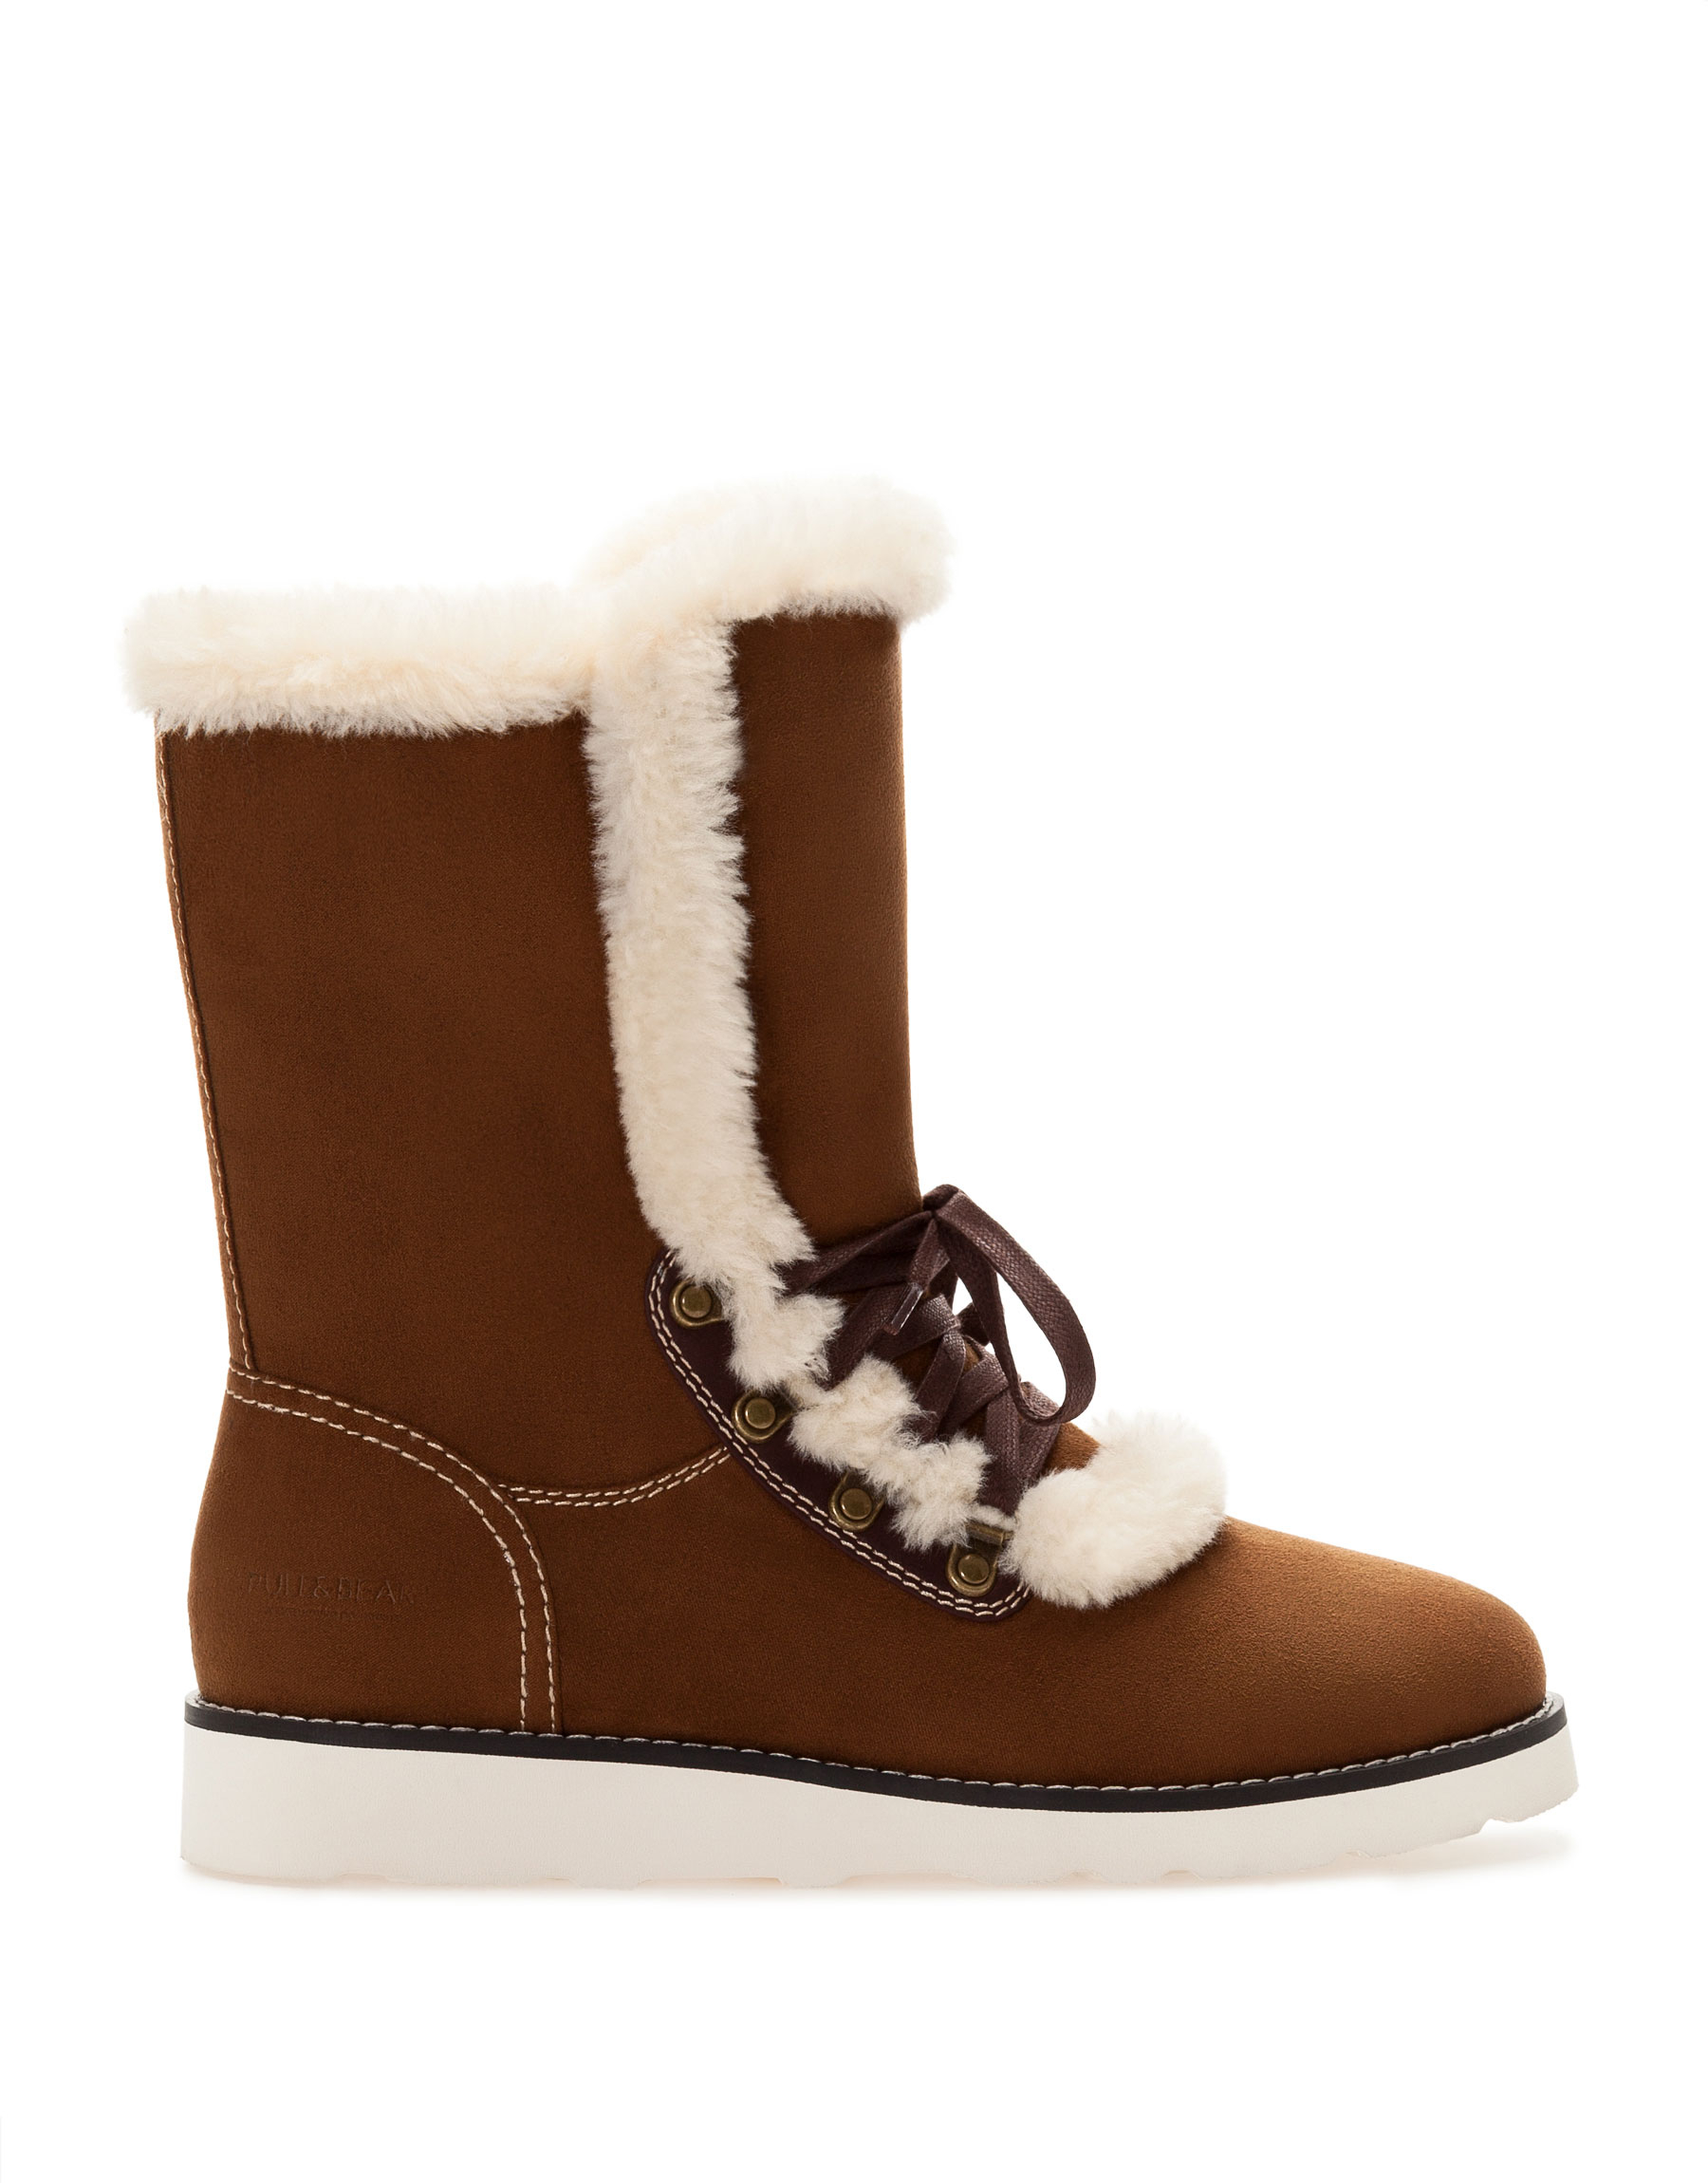 pull lace up ankle boots with fur detail in brown